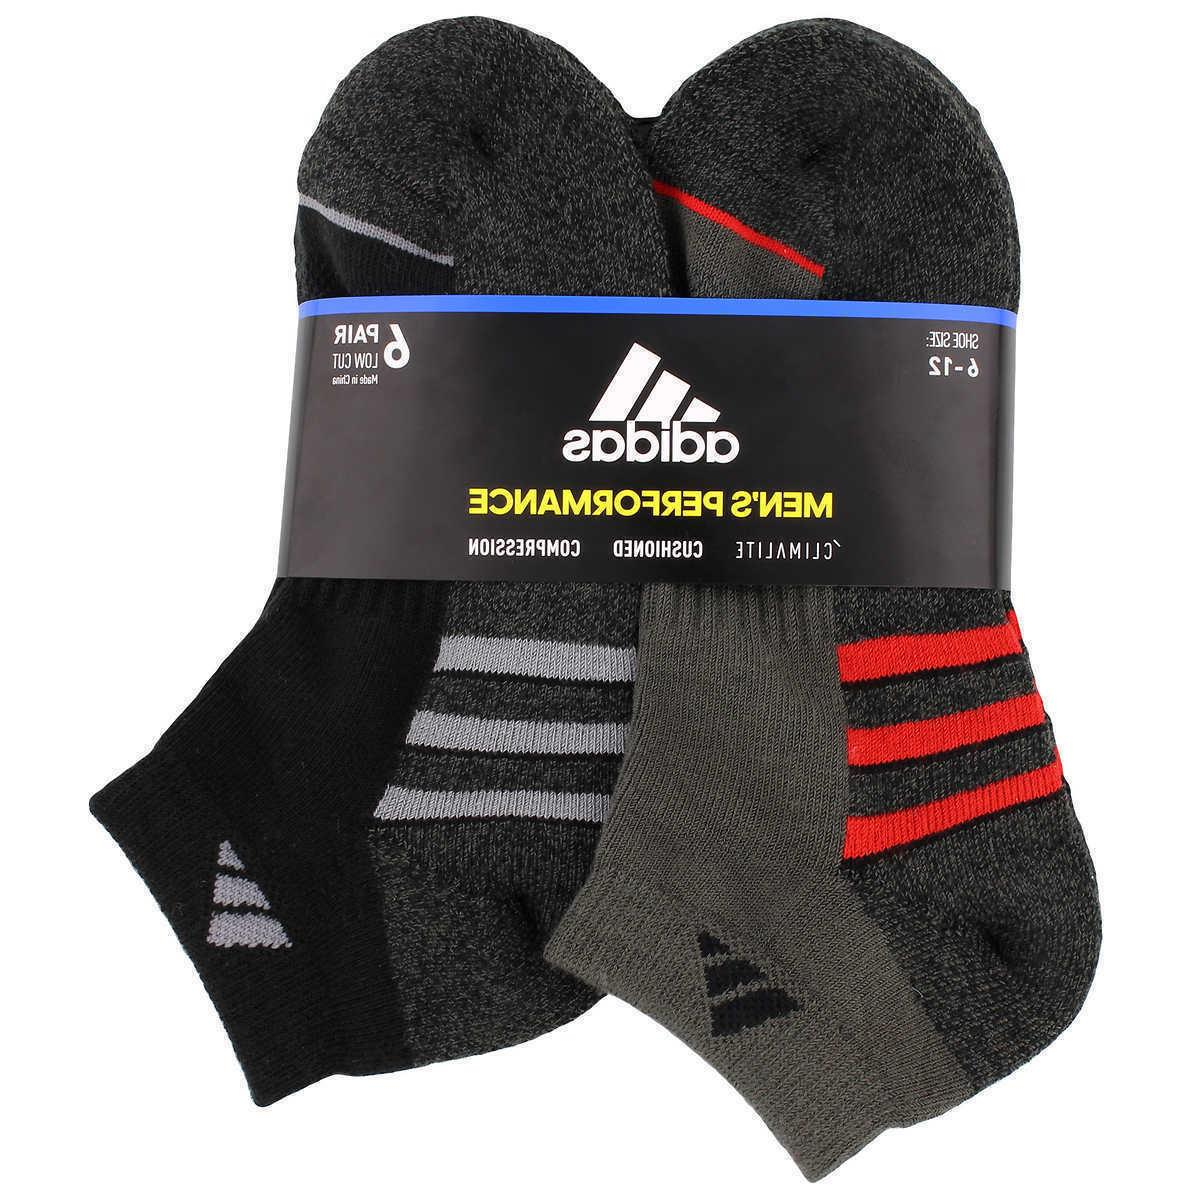 Adidas Men's Climalite Low Cut 6-pair Socks Regular Large Bl